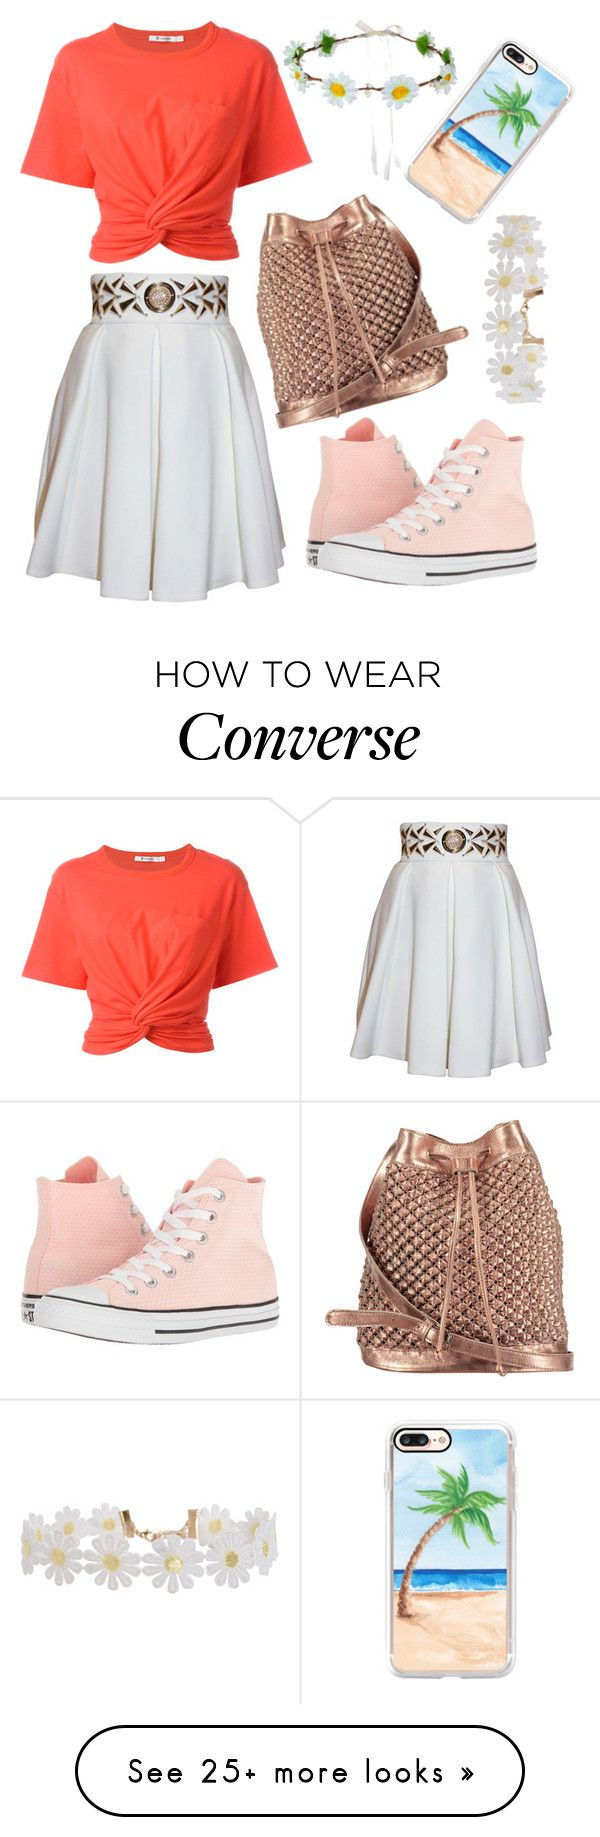 """Easy as can be"" by northern-queen on Polyvore featuring T By Alexander Wang, Balizza, Converse, nooki design, Humble Chic and Casetify"